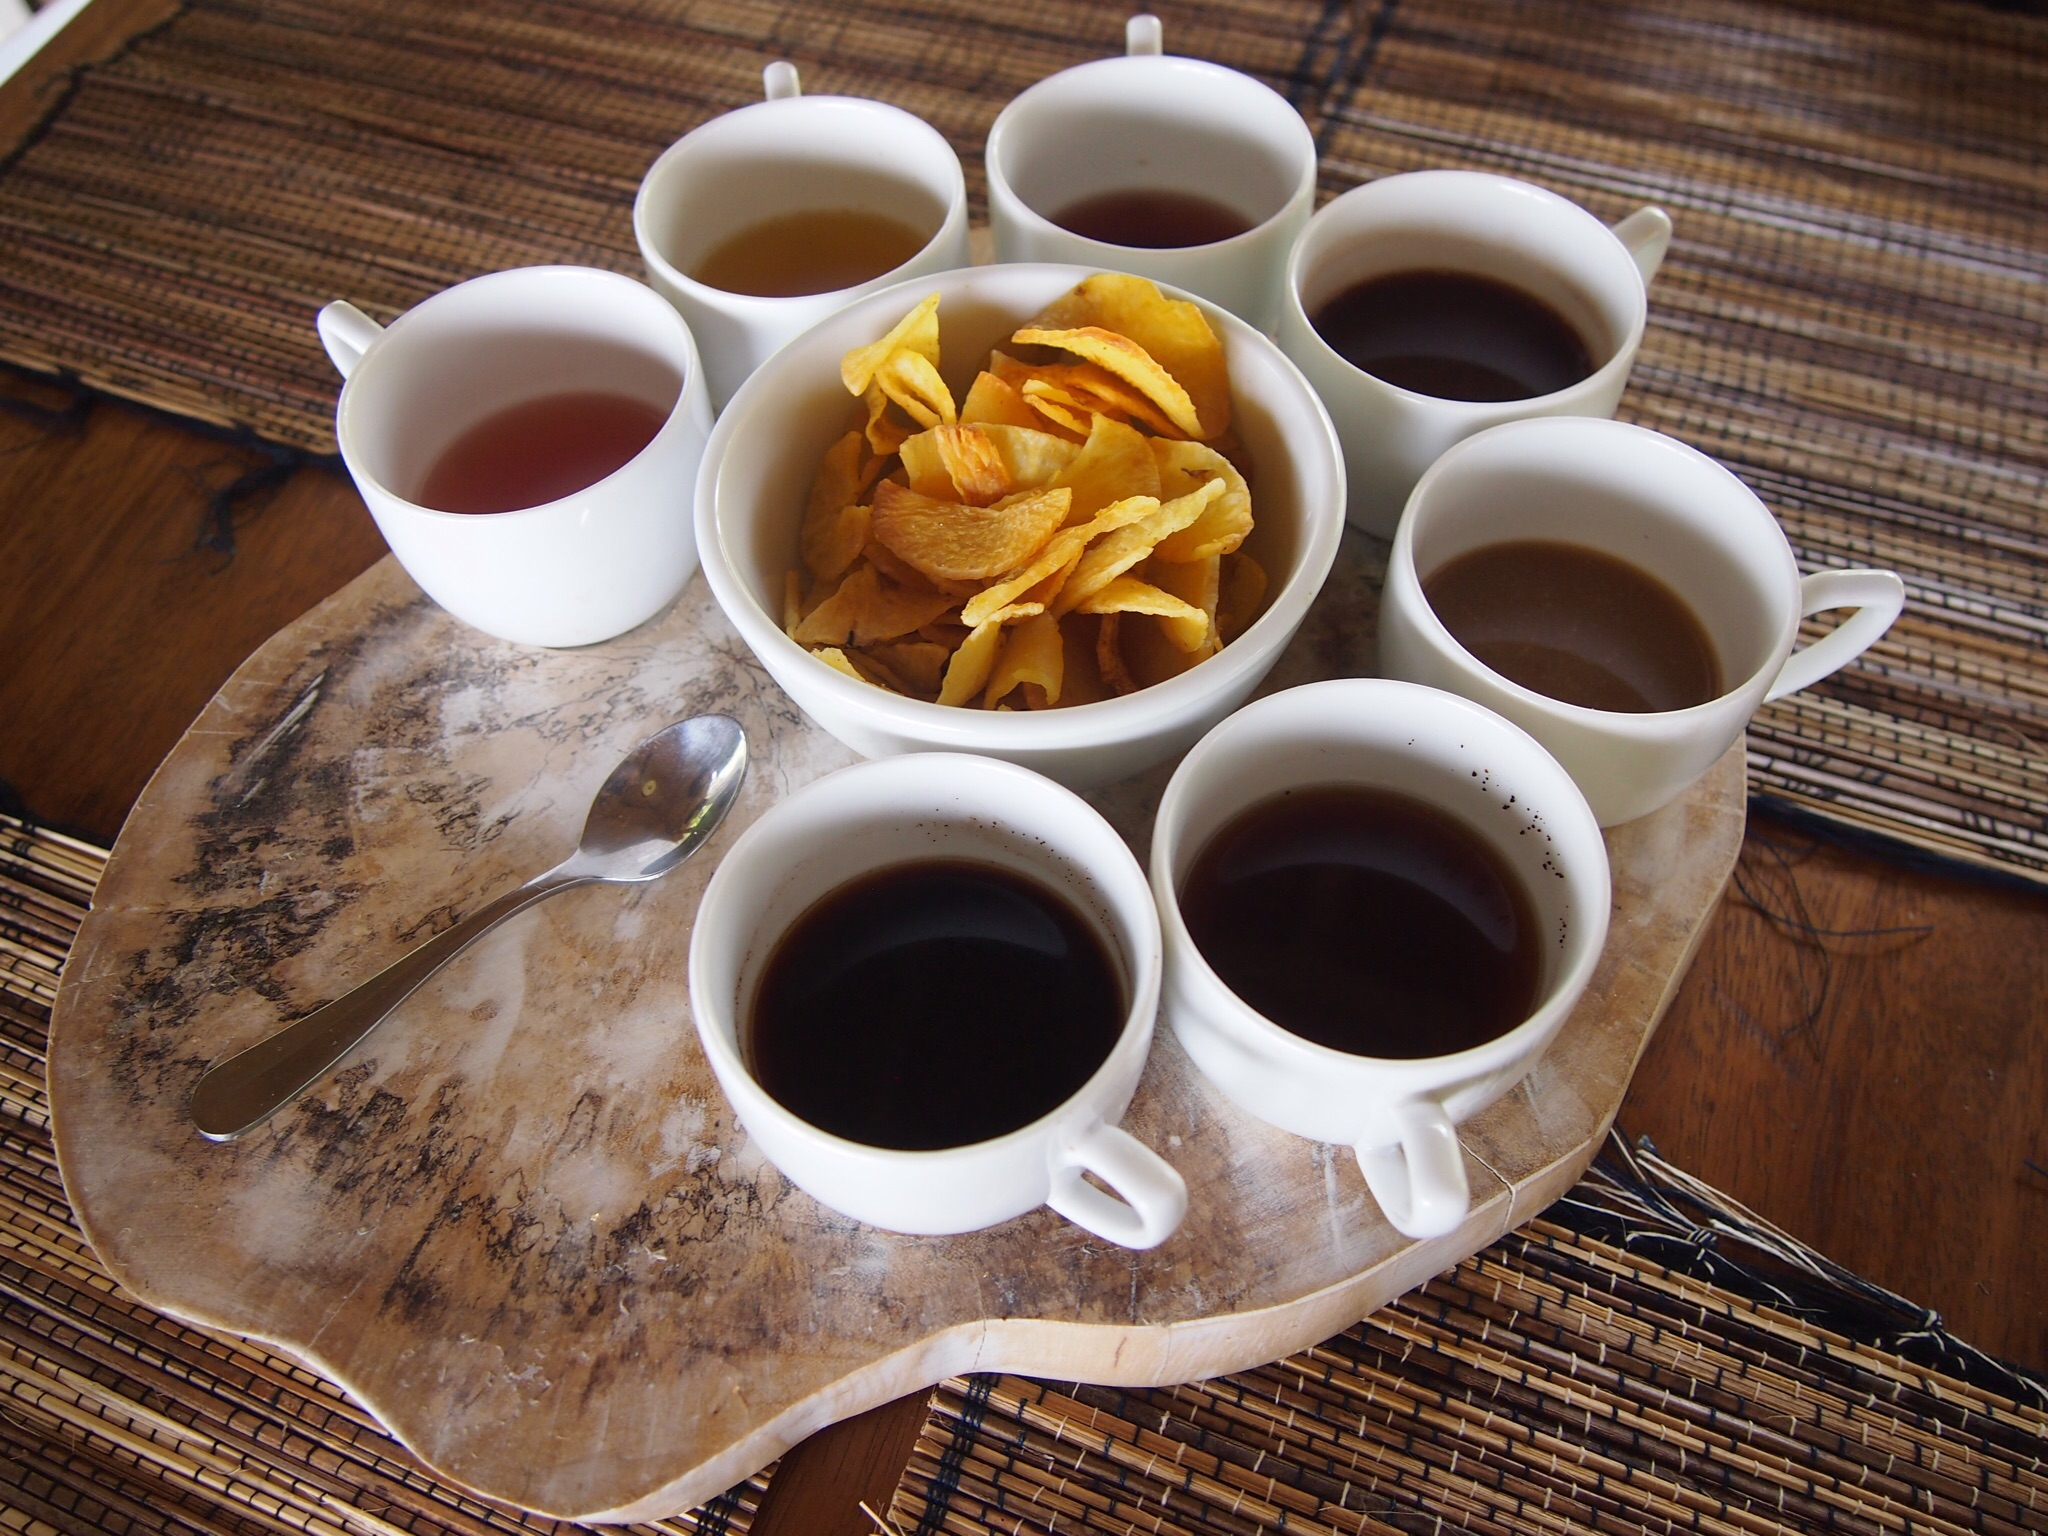 Different flavored coffee & tea